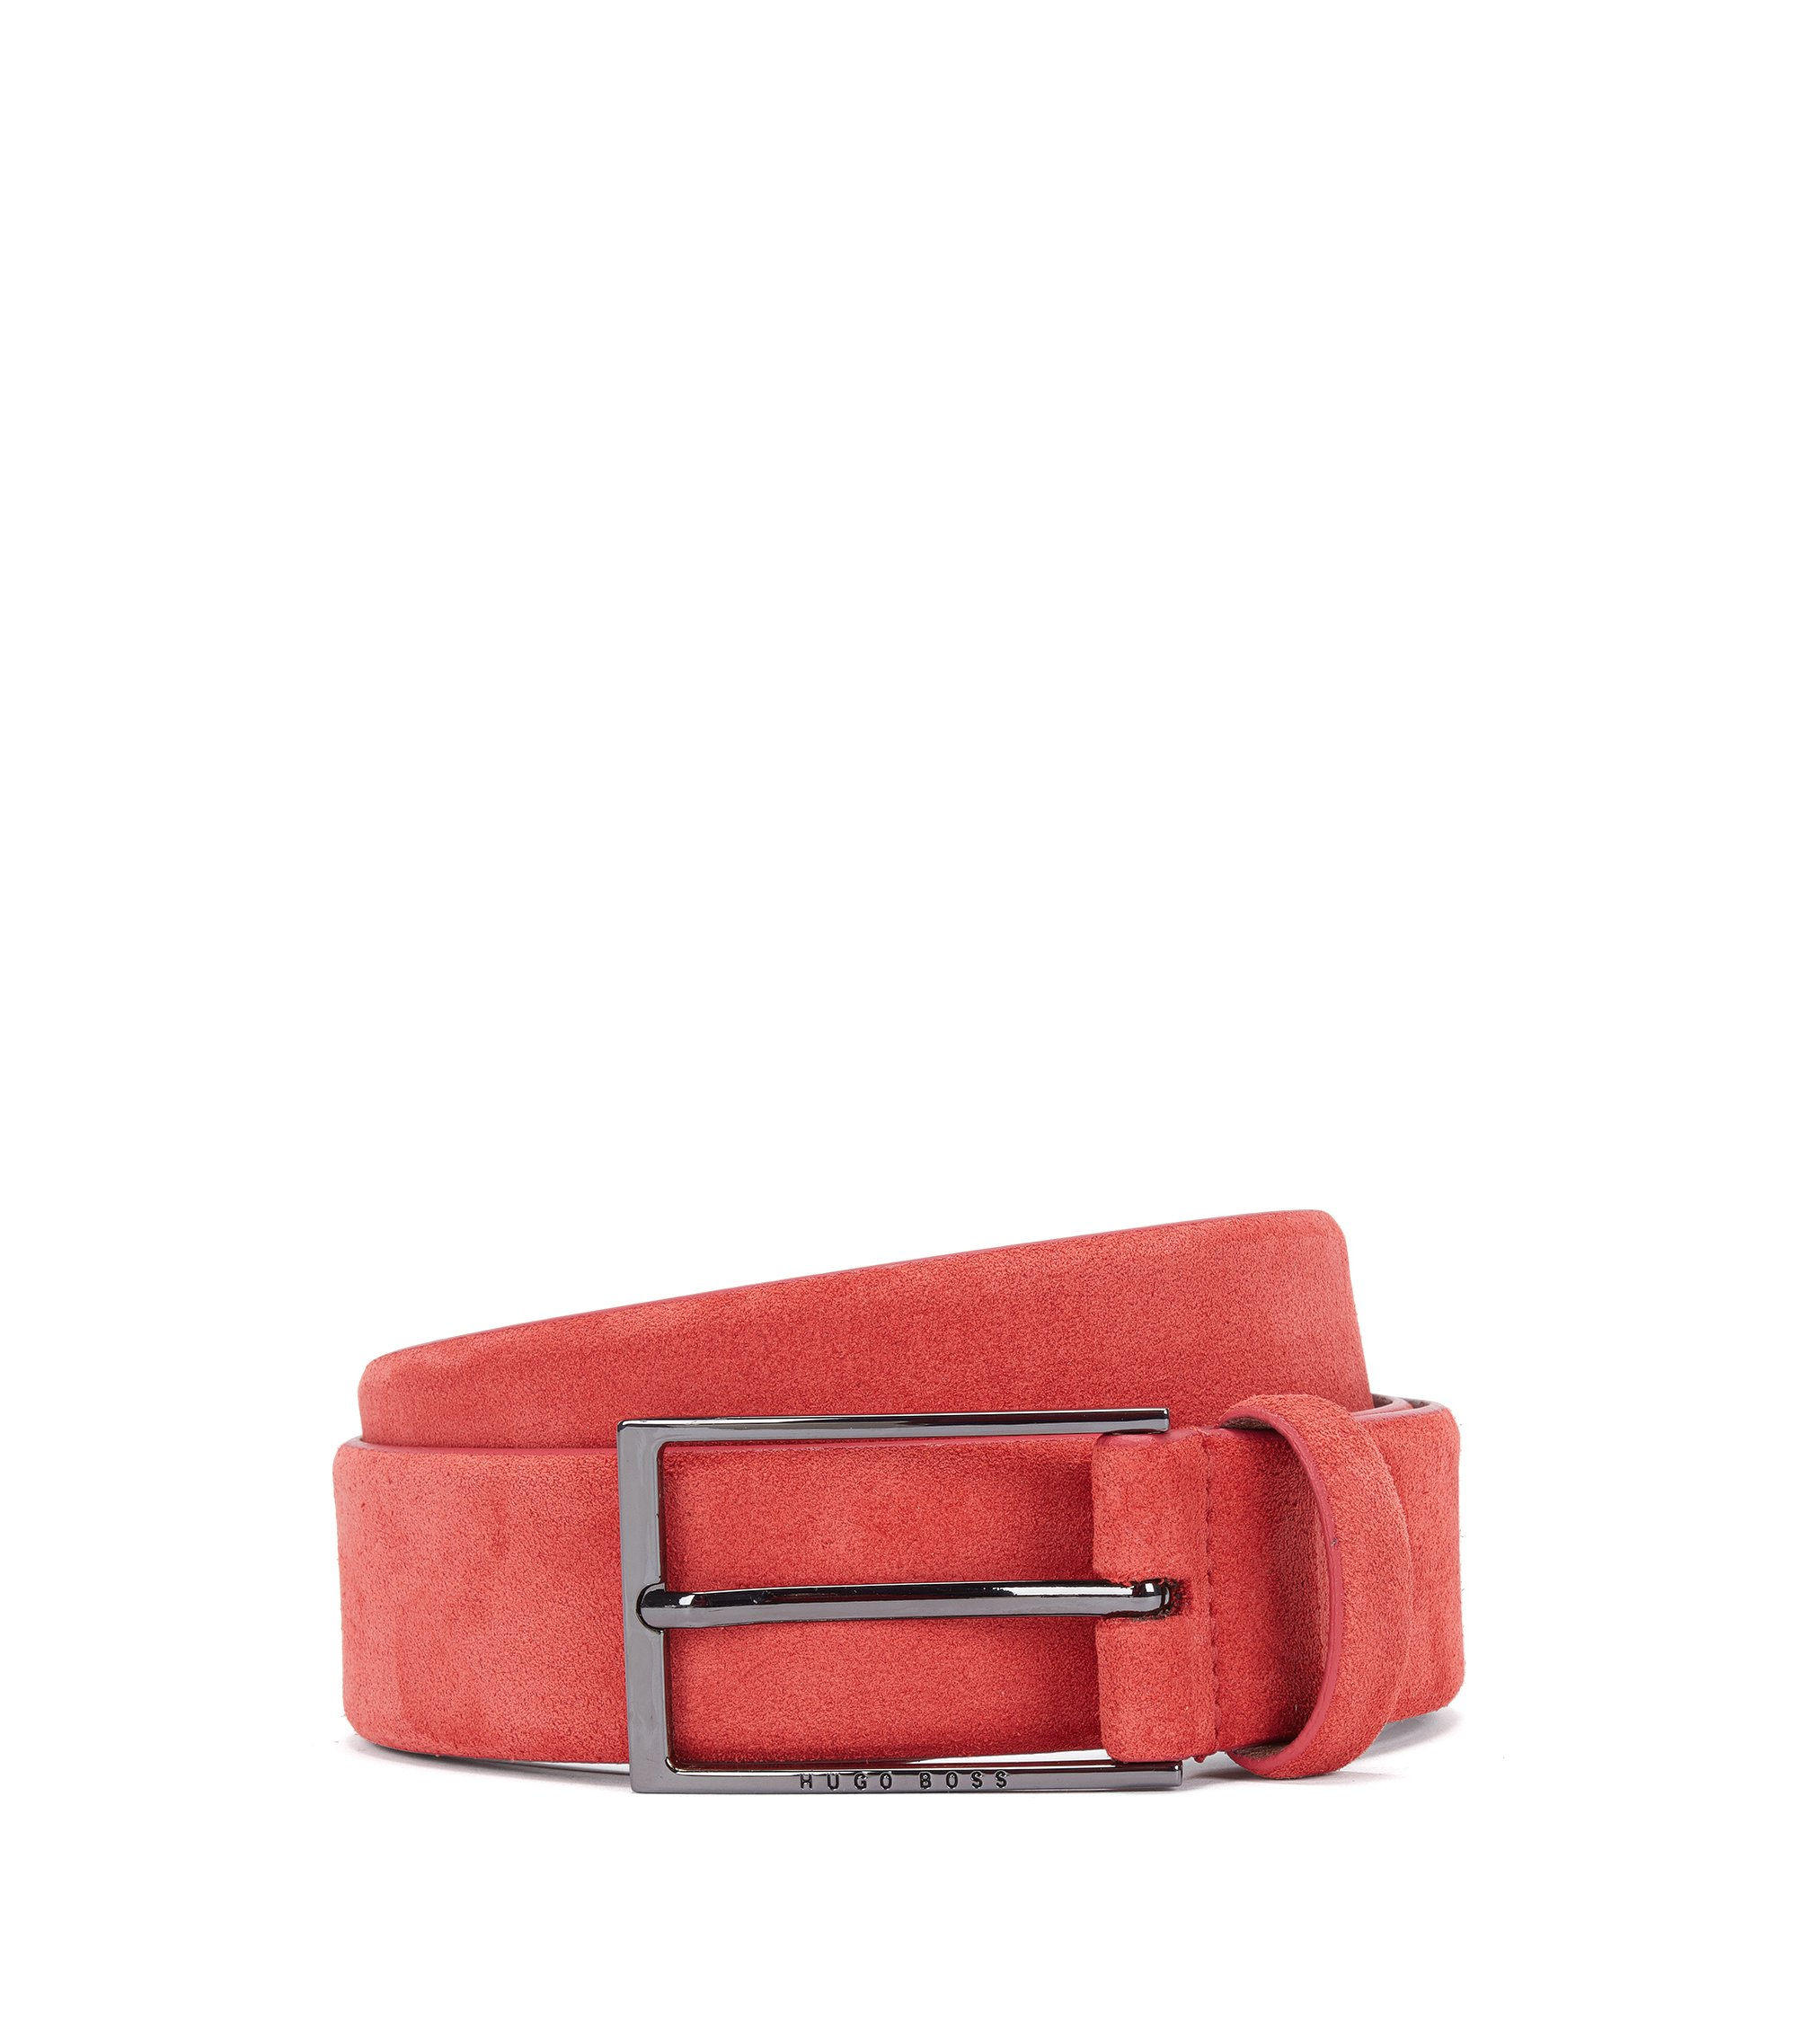 Suede Belt | Calindo Sz Sd, Dark Orange